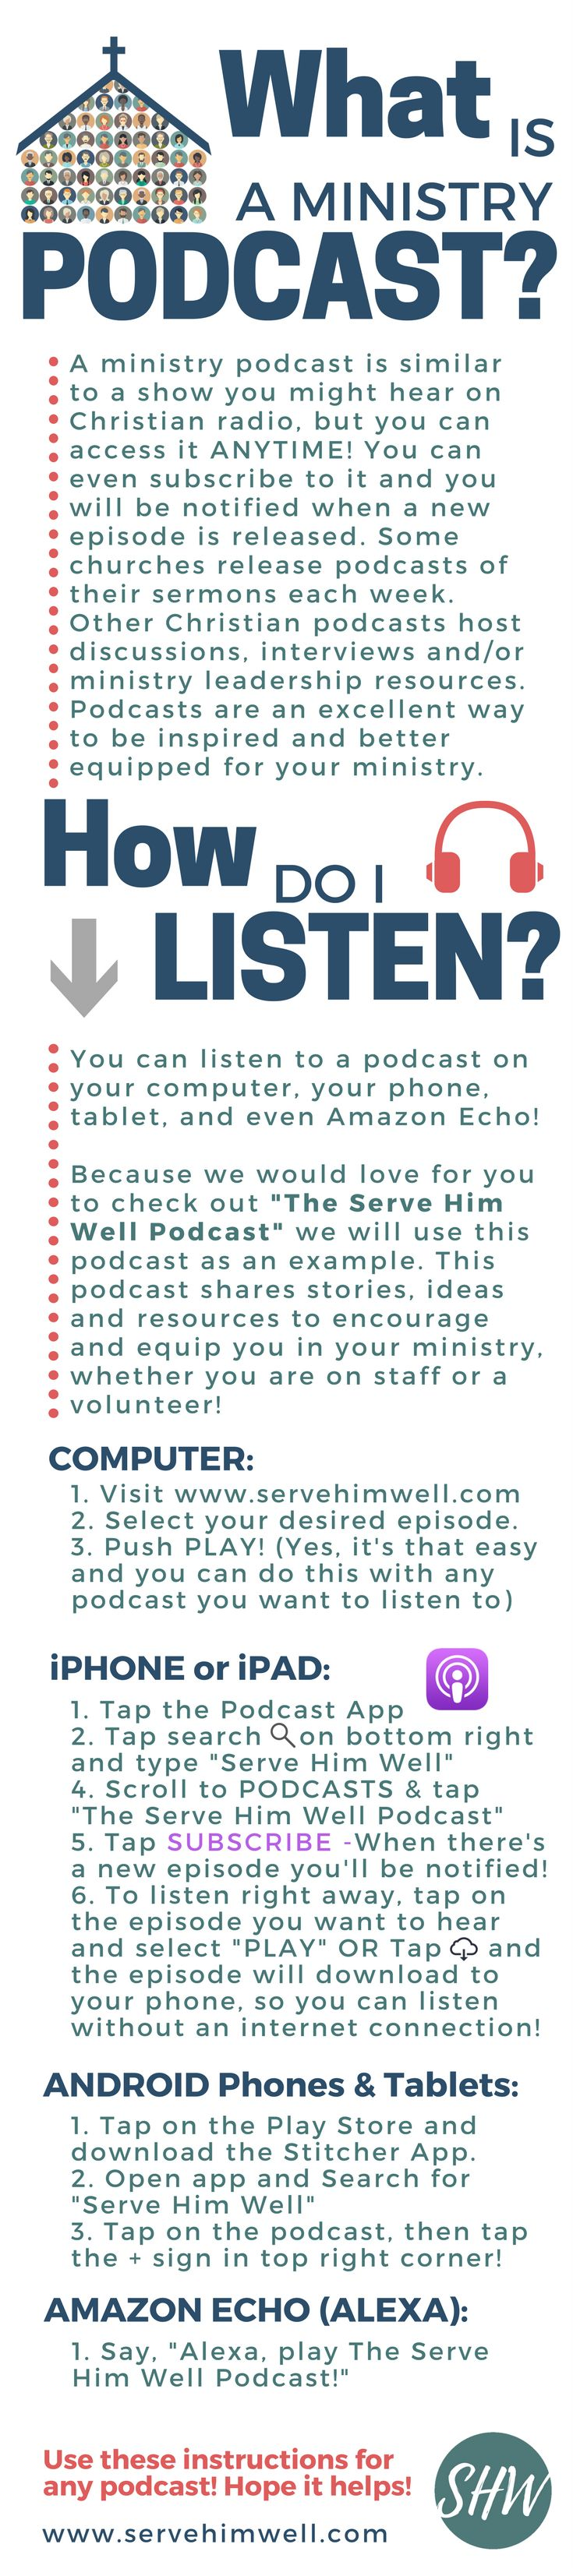 Ever wondered what a podcast is and how to listen use our handy guide and check out the serve him well podcast we share stories ideas and resources to